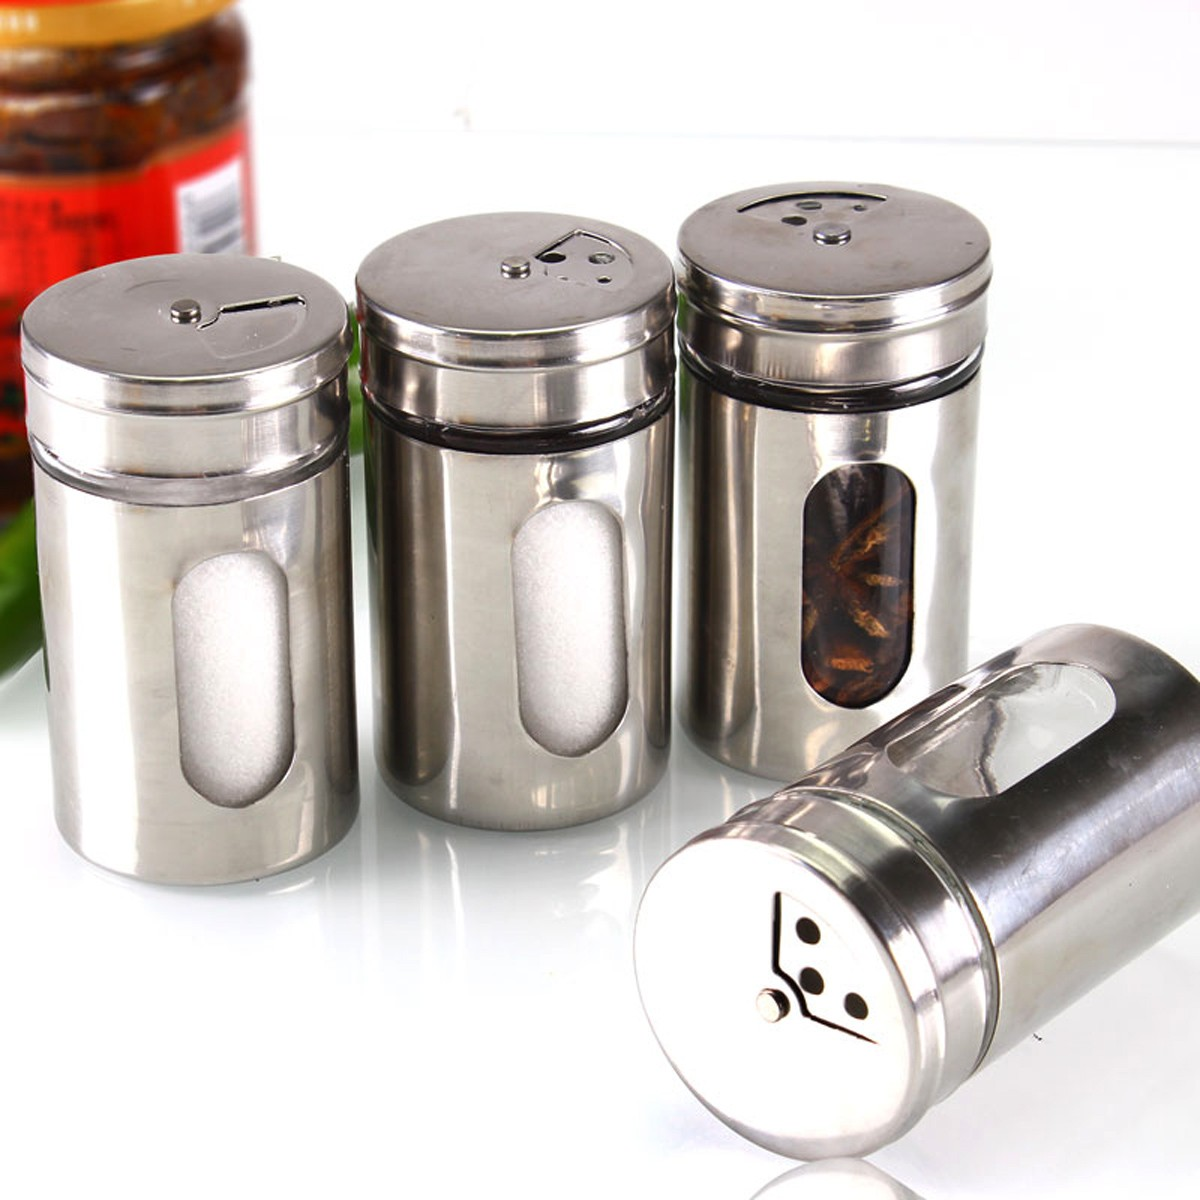 kitchen glass containers reviews online shopping kitchen glass 1 pcs hot 4 different needs rotating holes spice jars condiment pot salt pepper kitchen storage stainless steel glass container